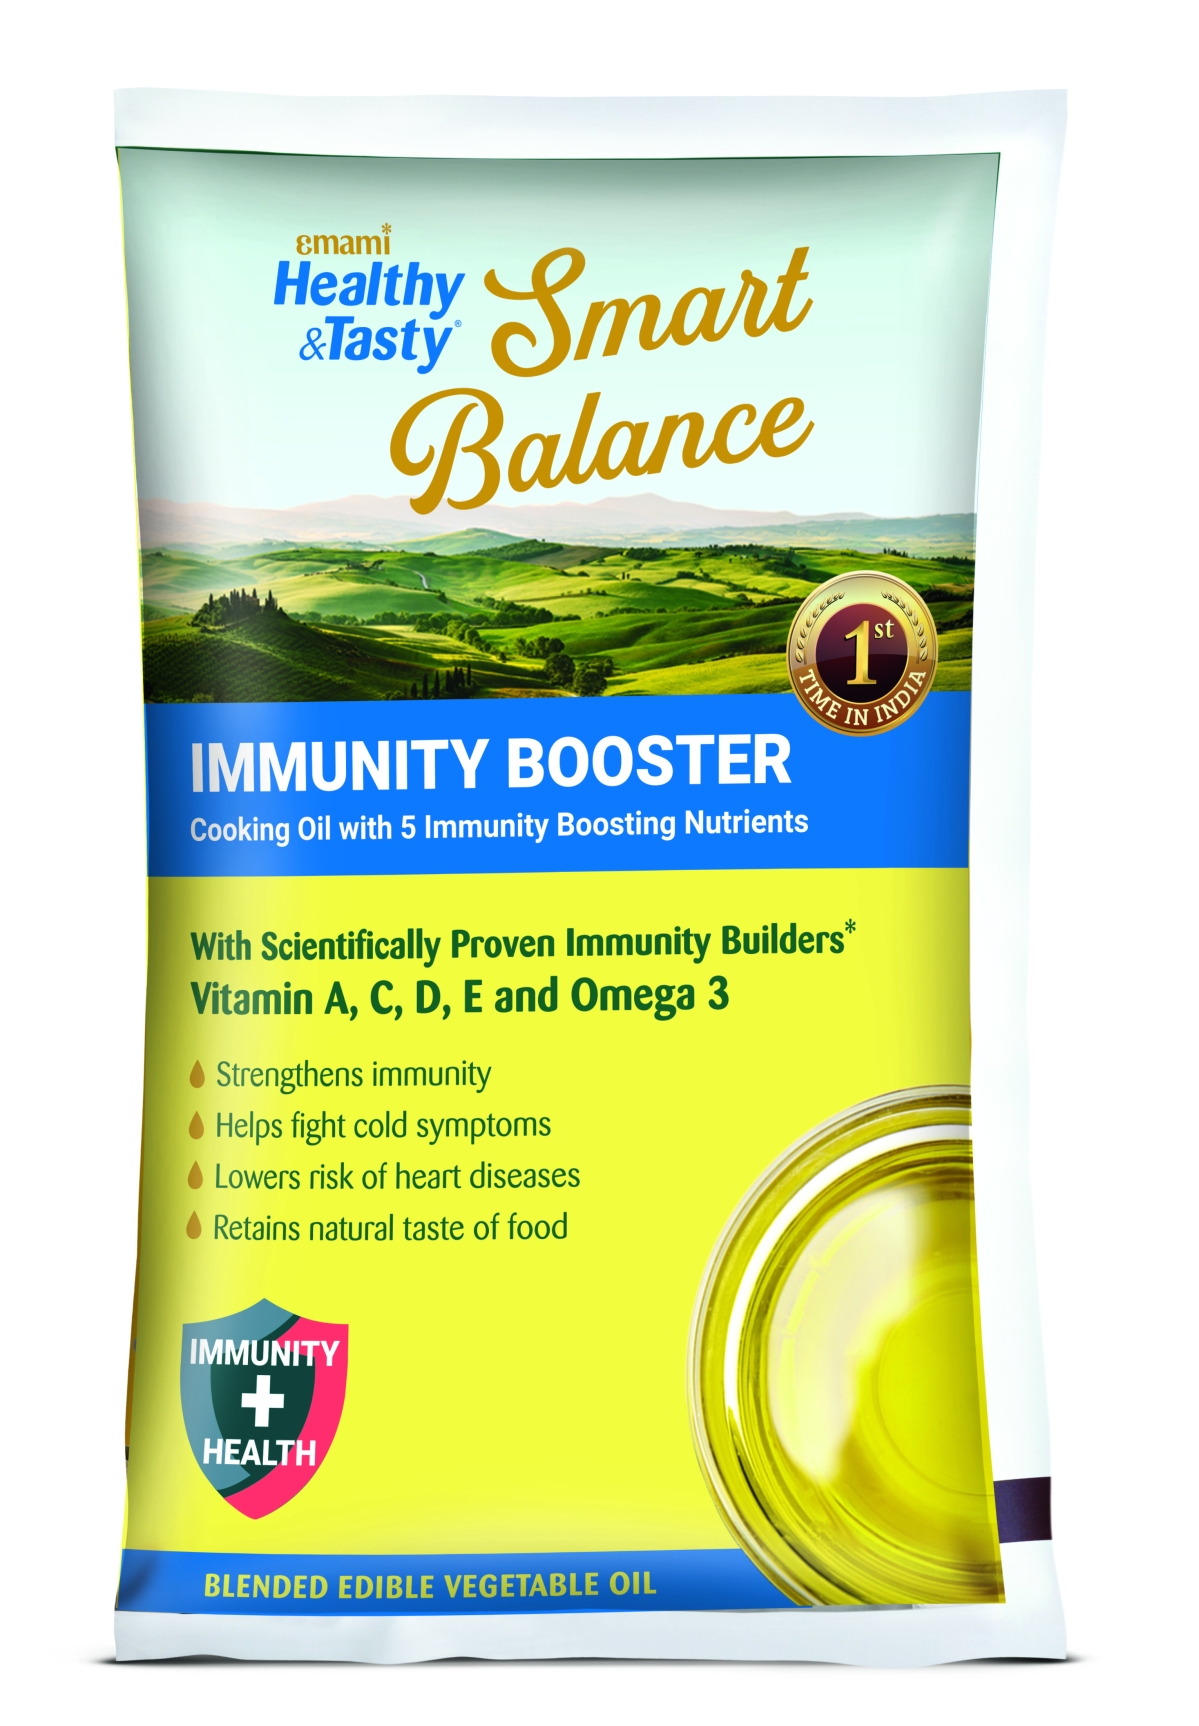 Emami Agrotech launches immunity booster edible oil